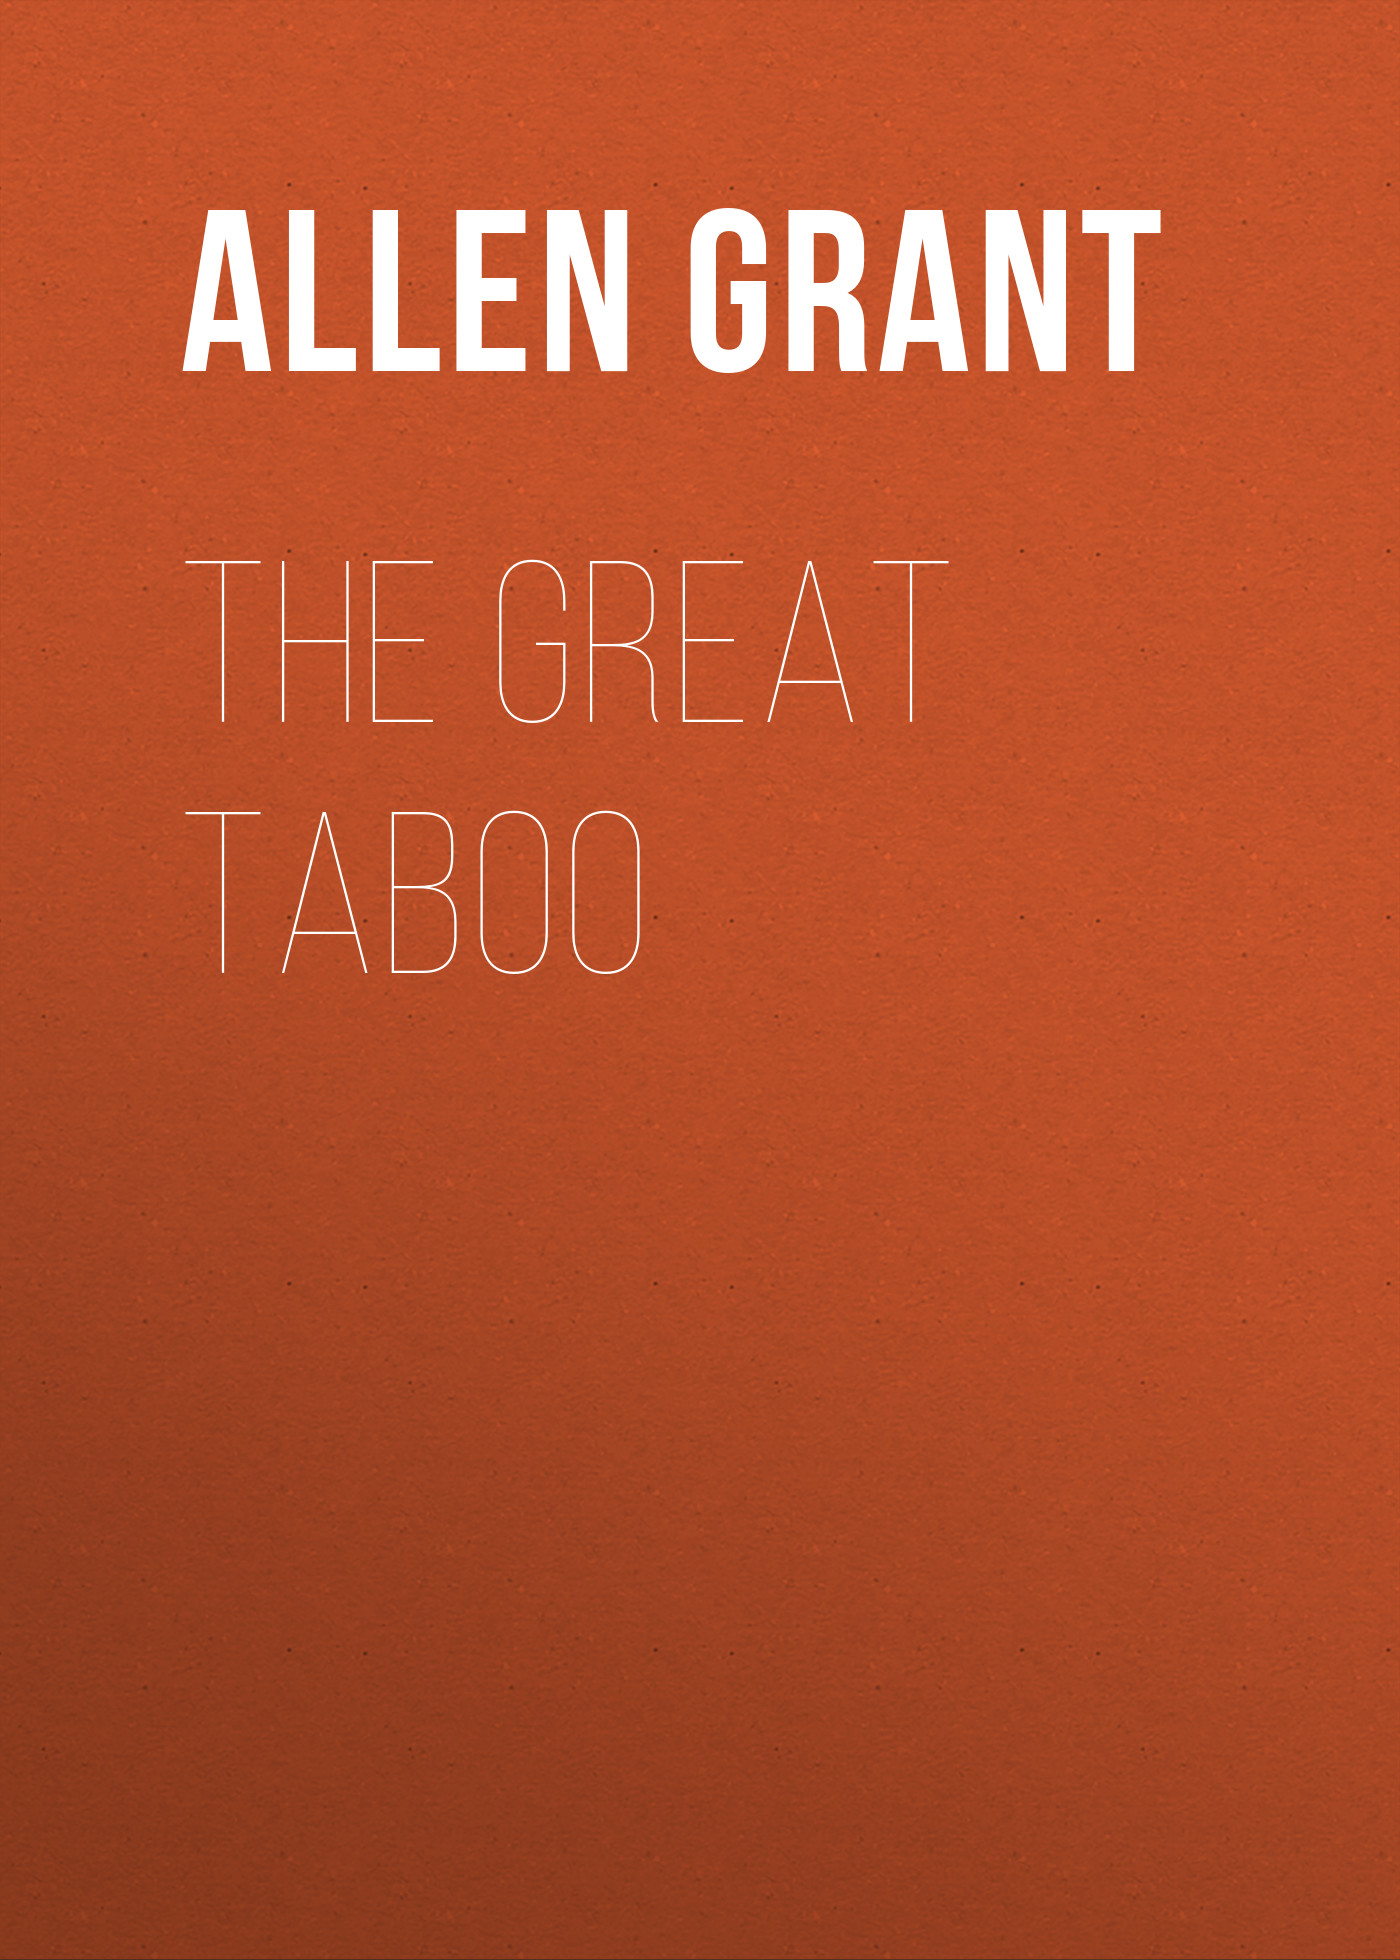 Allen Grant The Great Taboo